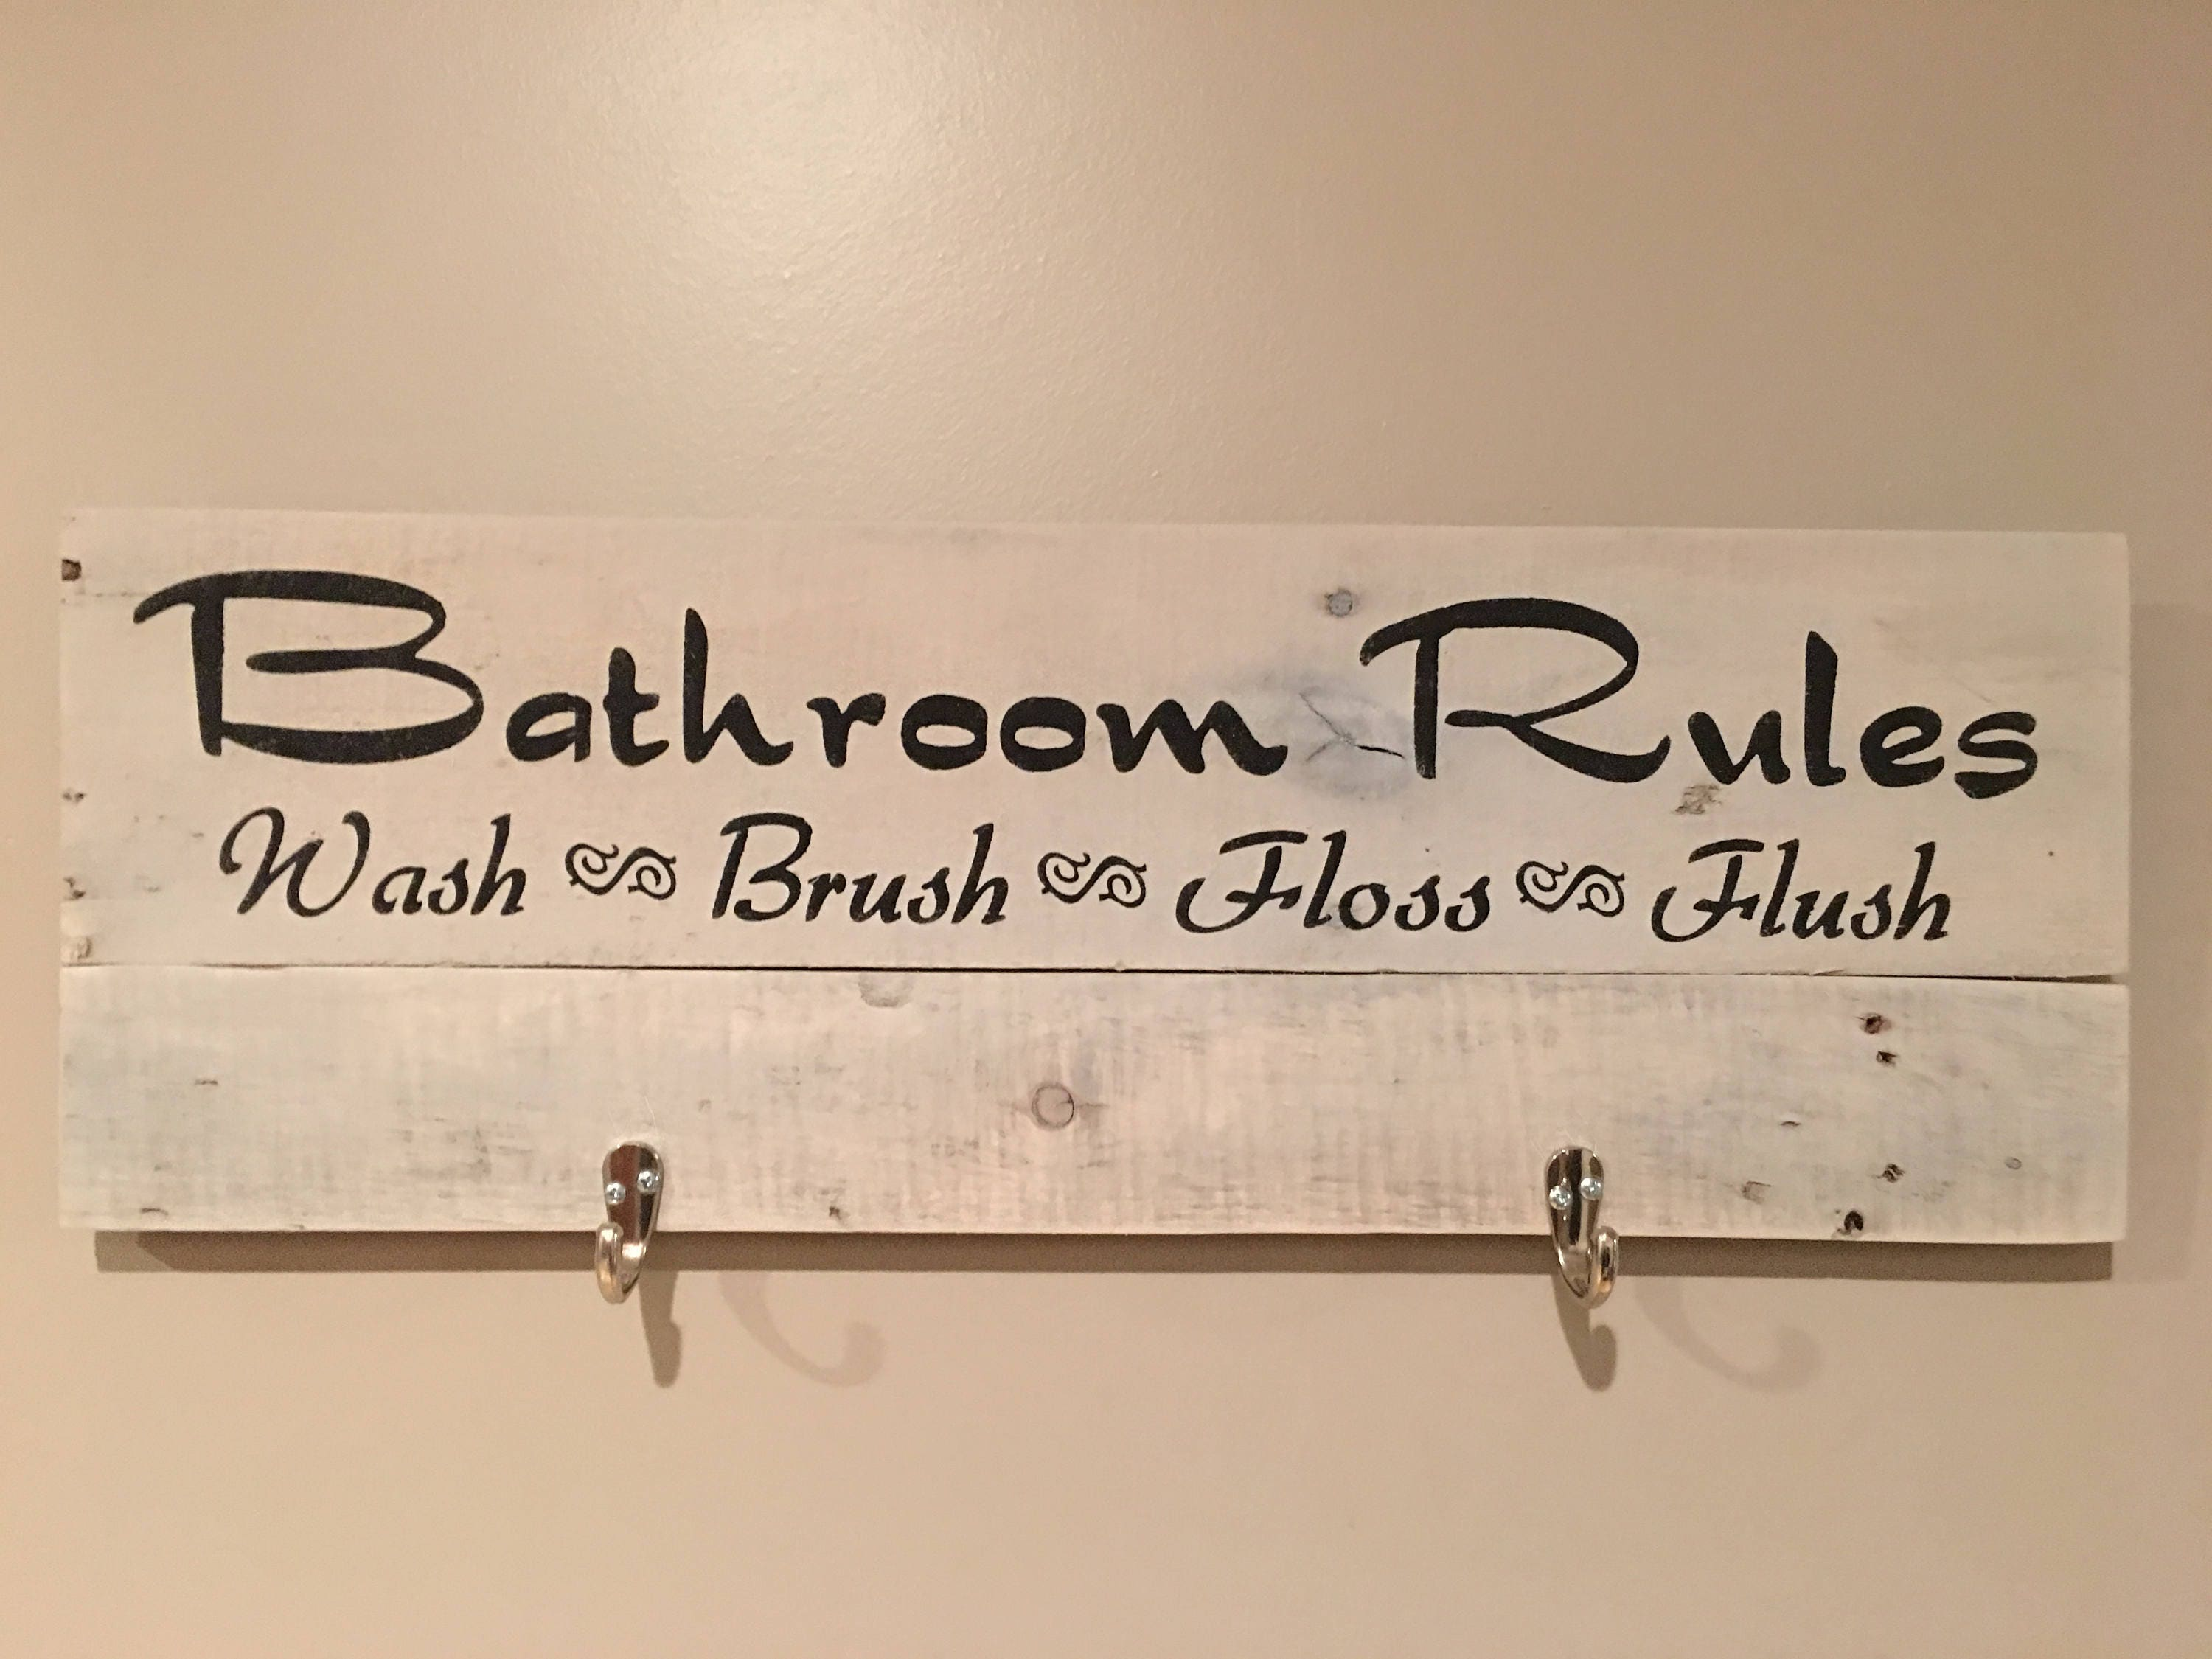 at the wuagj brewhouse sign signs on imgur bathroom qkkswcq canadian album gallery